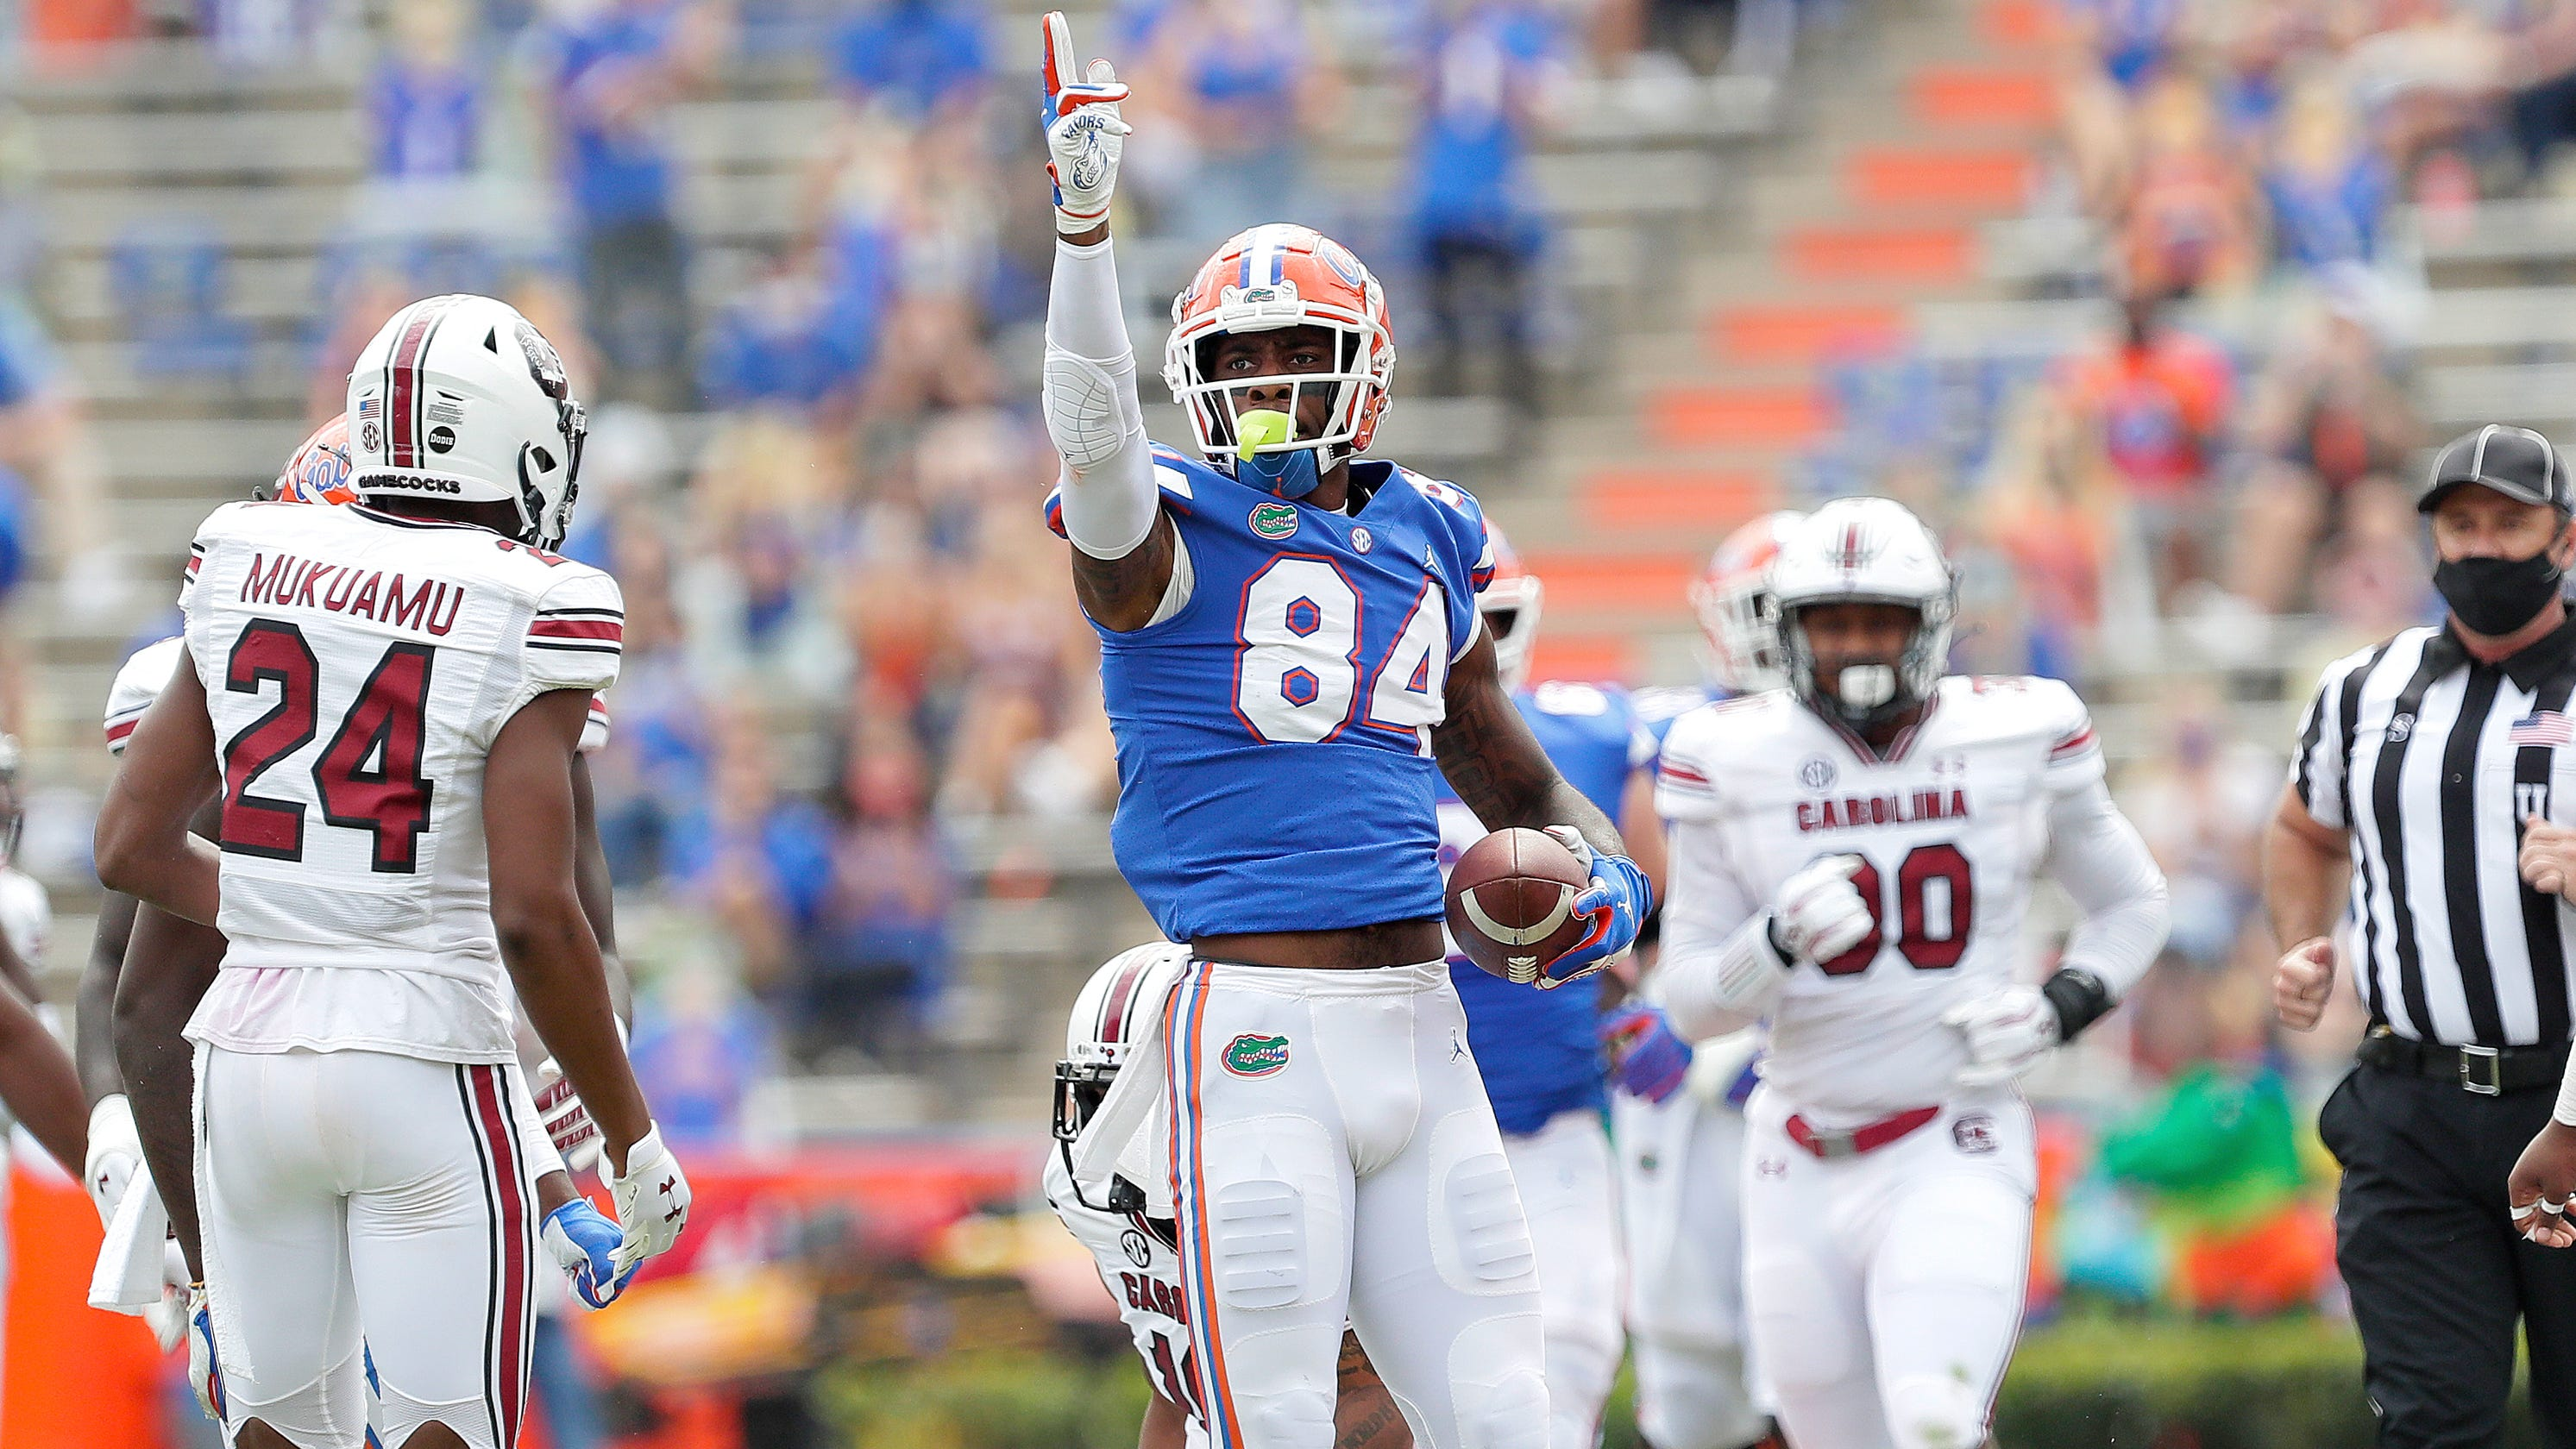 Florida defeats South Carolina behind Kyle Trask and Kyle Pitts